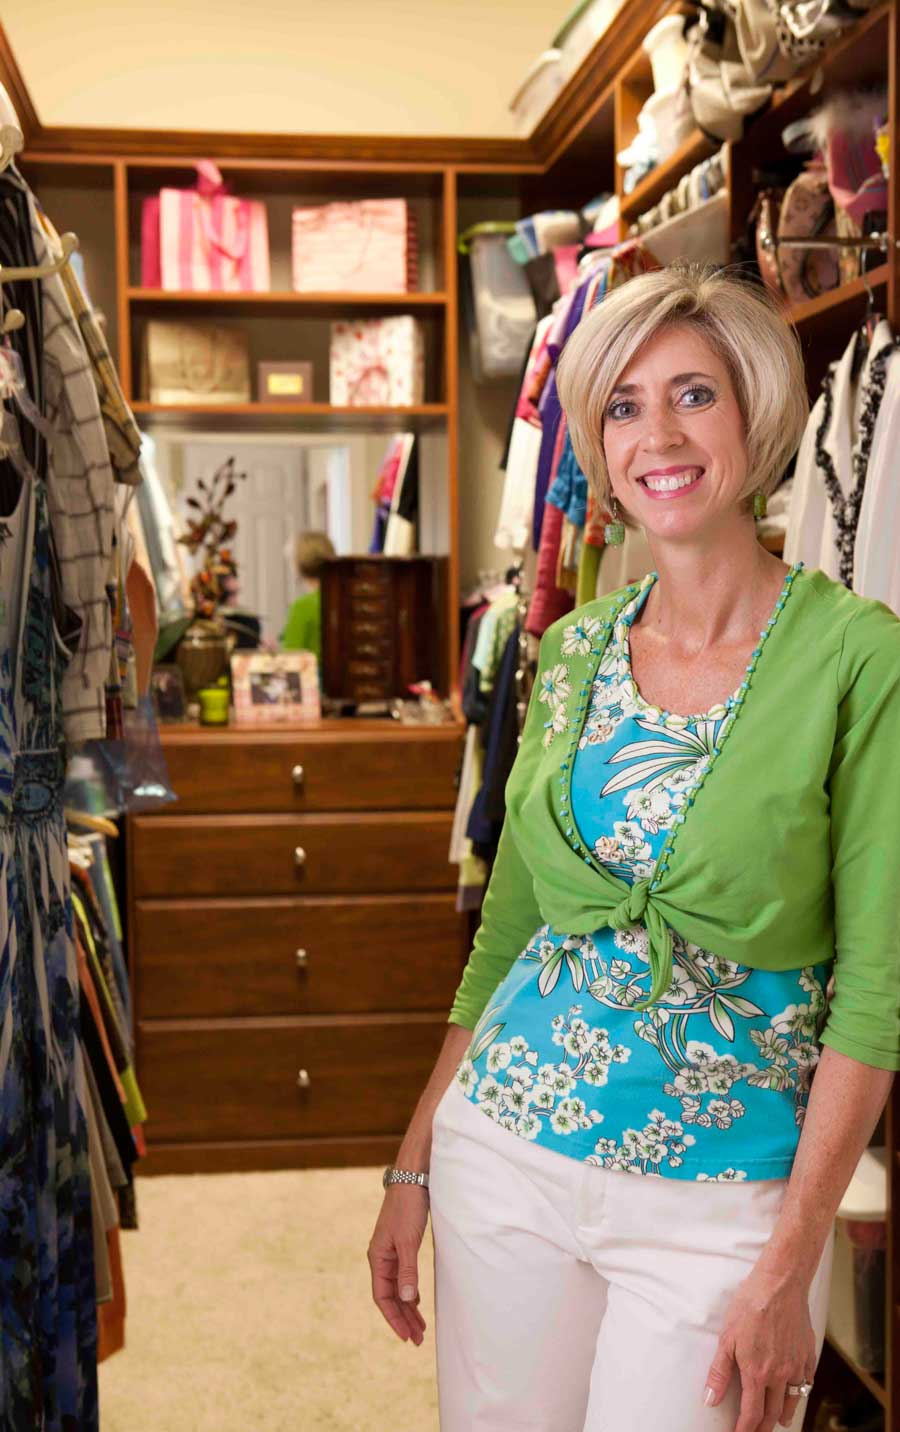 DRESS FOR SUCCESS, May 2015: Wendy Lyn Phillips